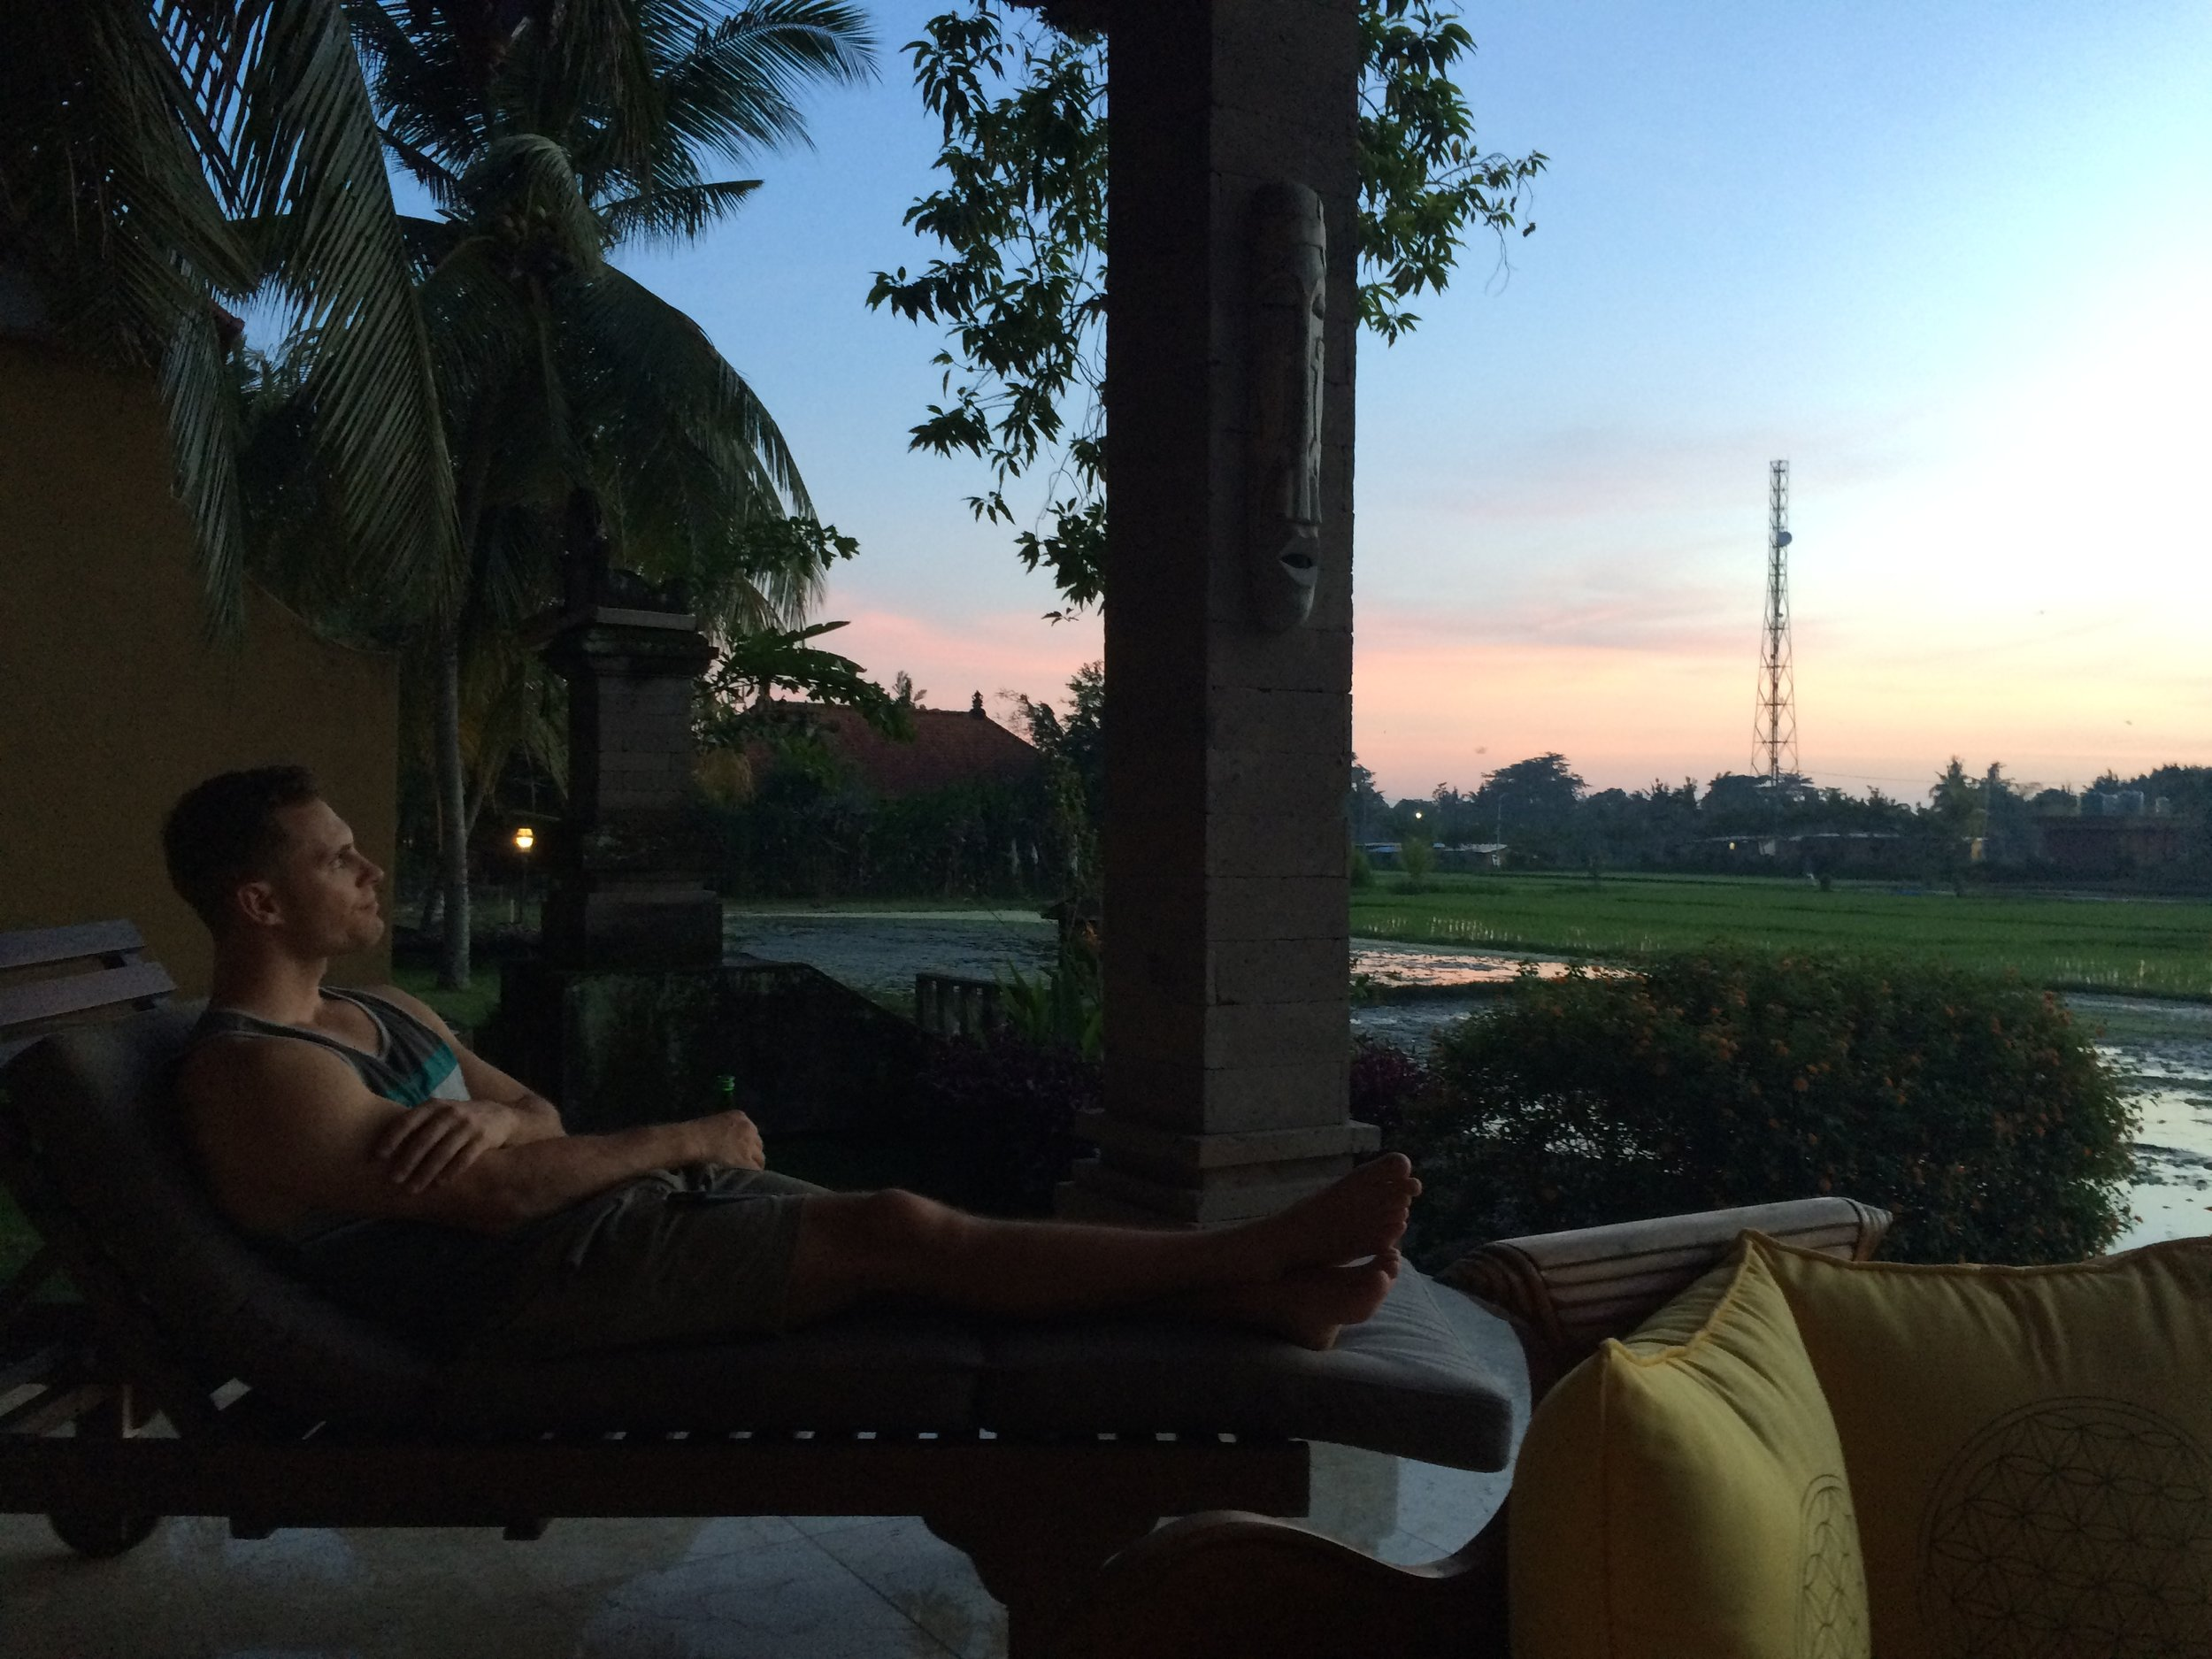 Enjoying the sunset on our private back patio overlooking more rice fields. Heaven.